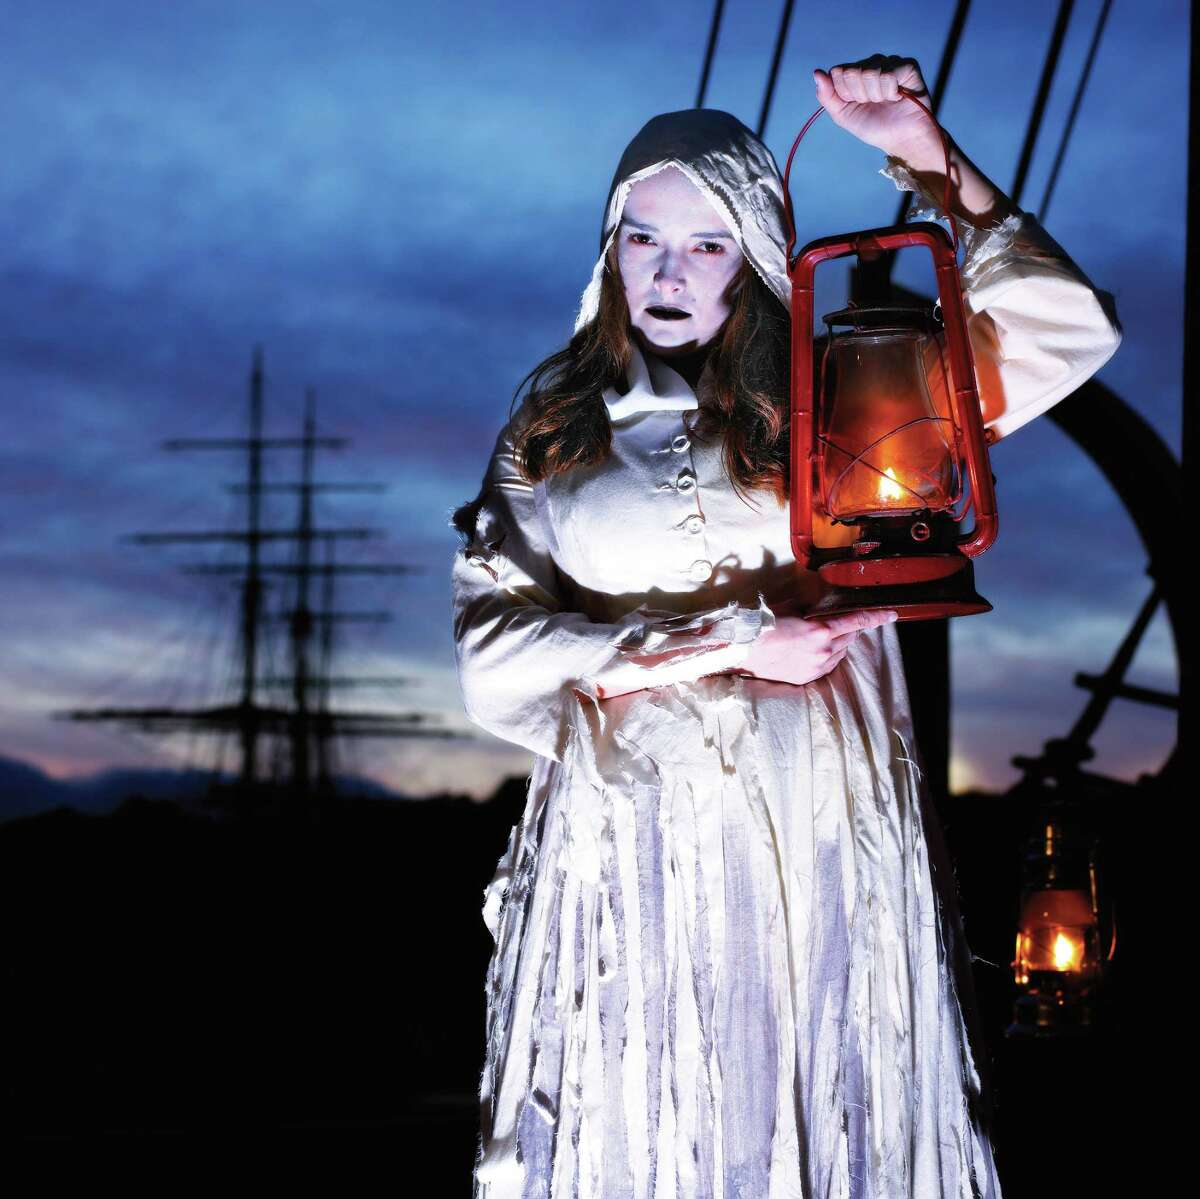 Mystic Seaport Museum invites you to celebrate Halloween this year with a family-themed